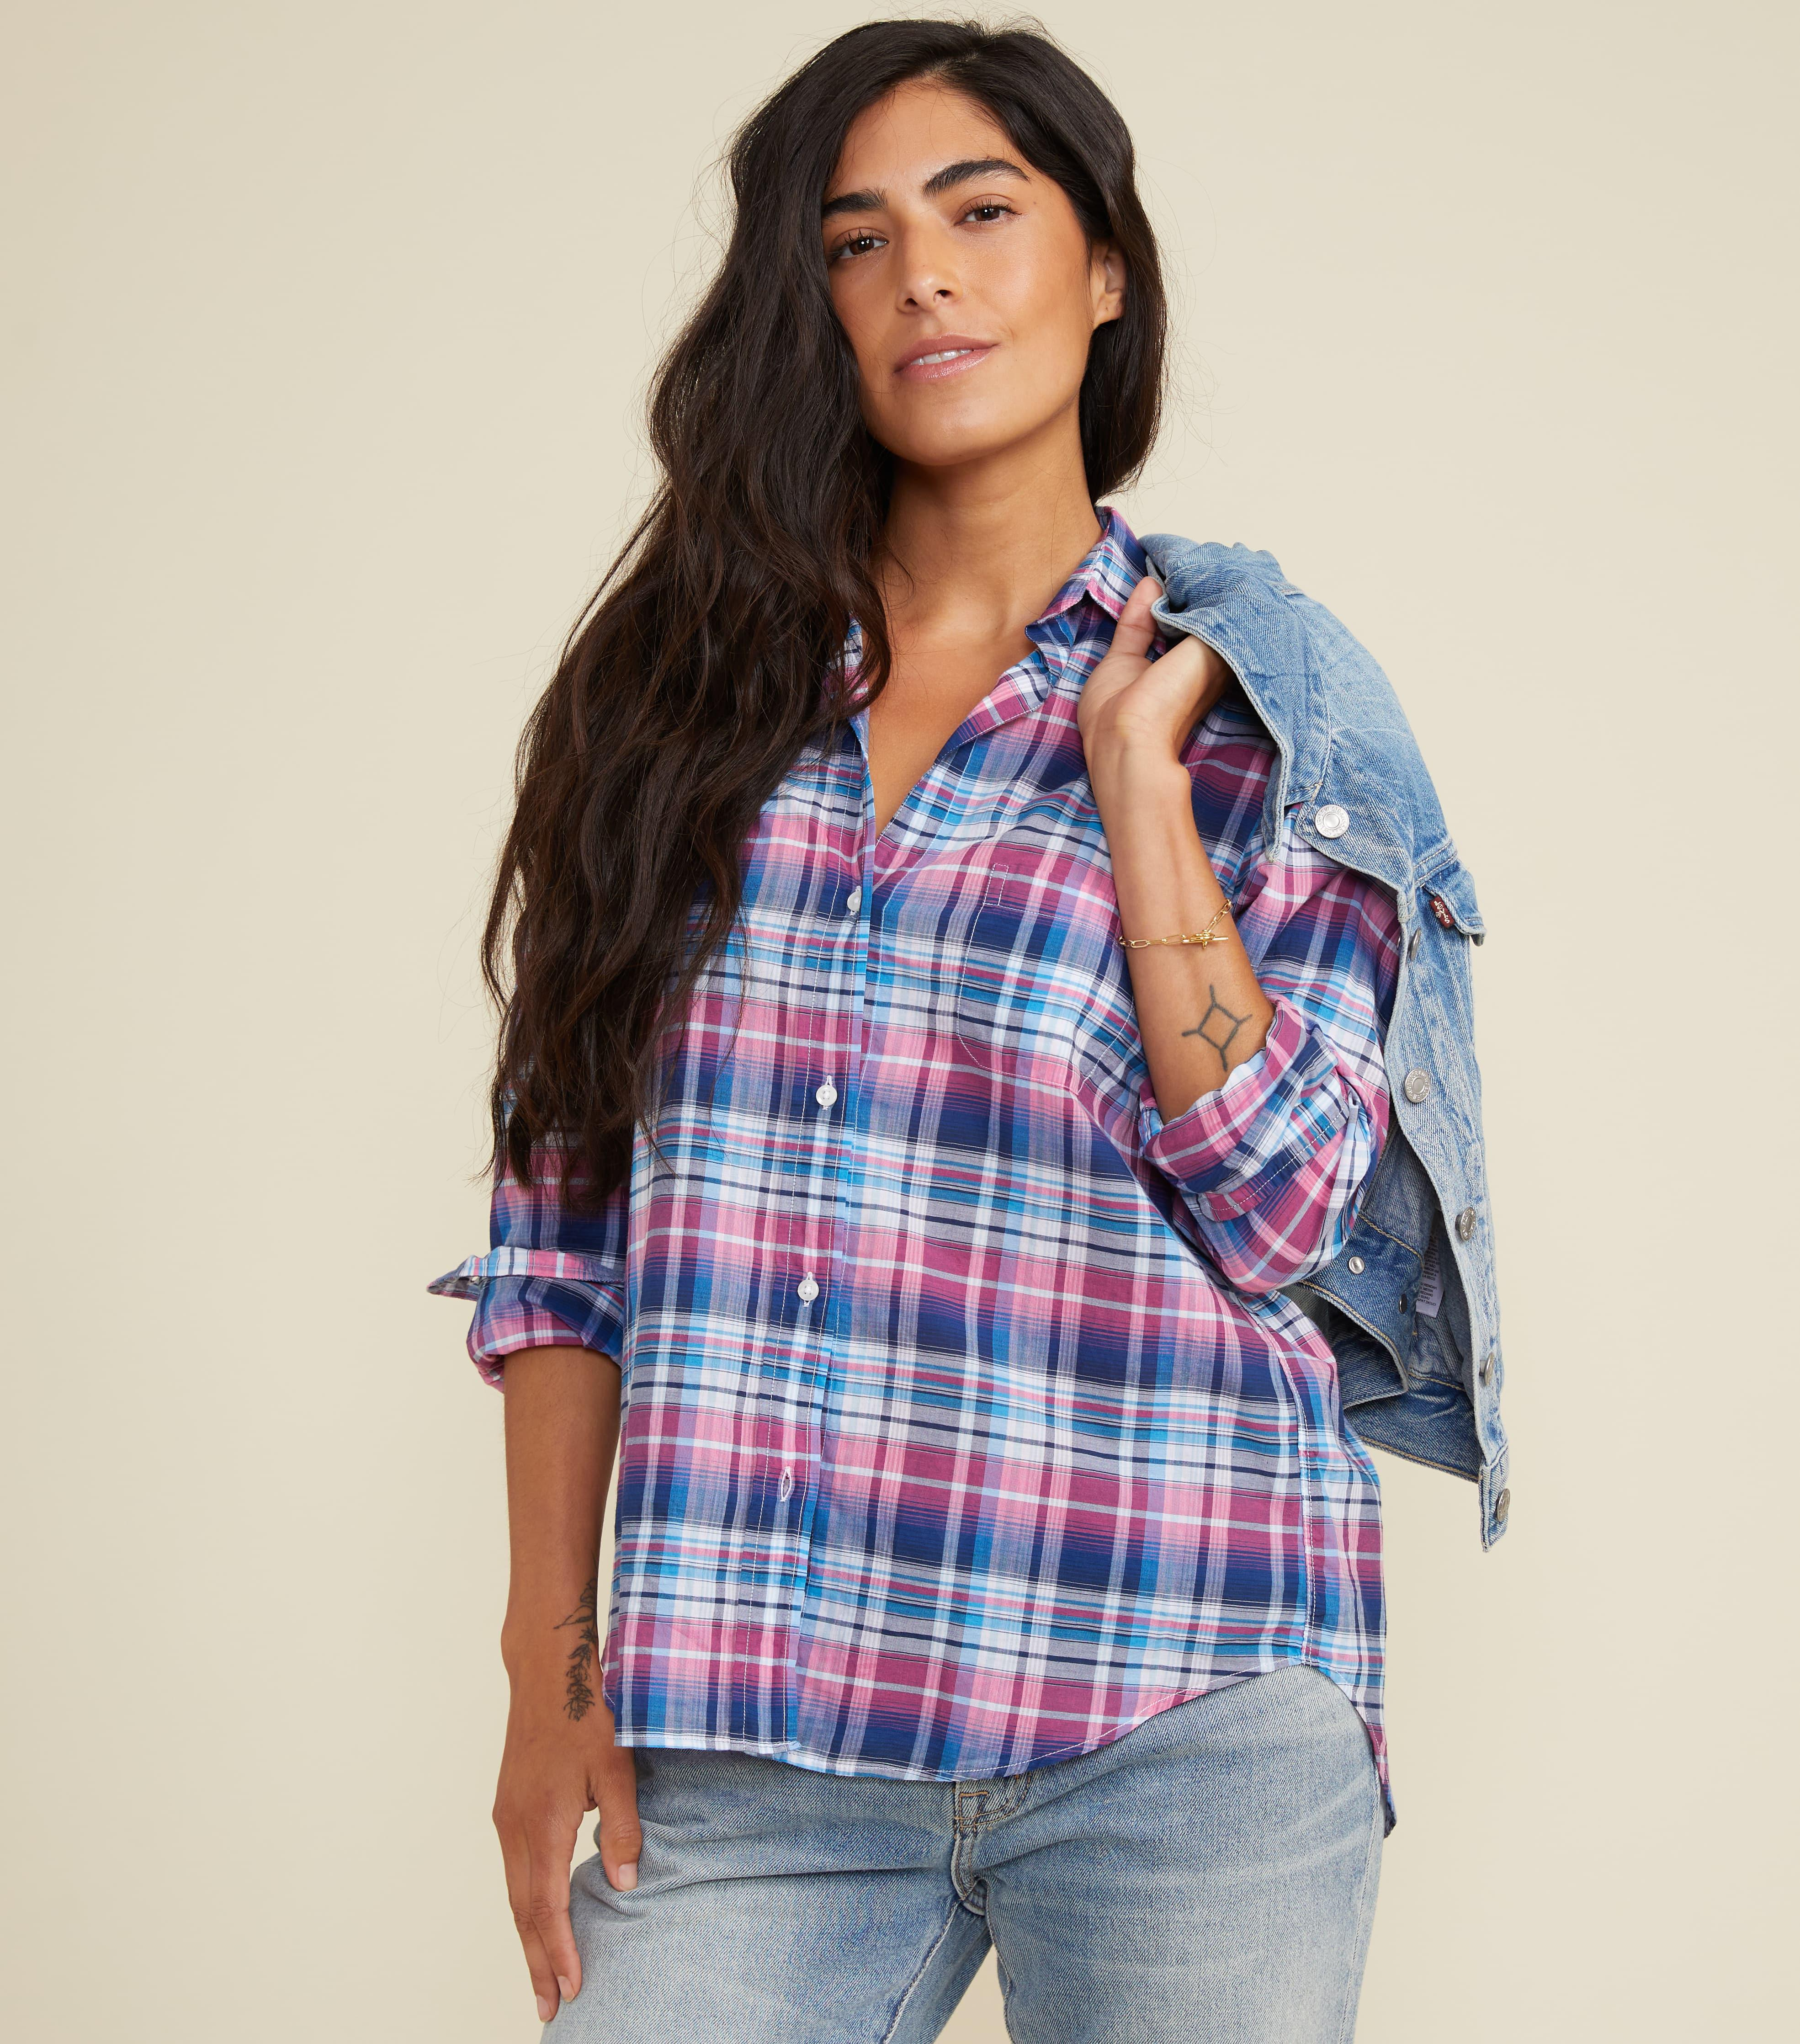 The Hero Blue and Pink Multi Plaid, Tissue Cotton Final Sale 1